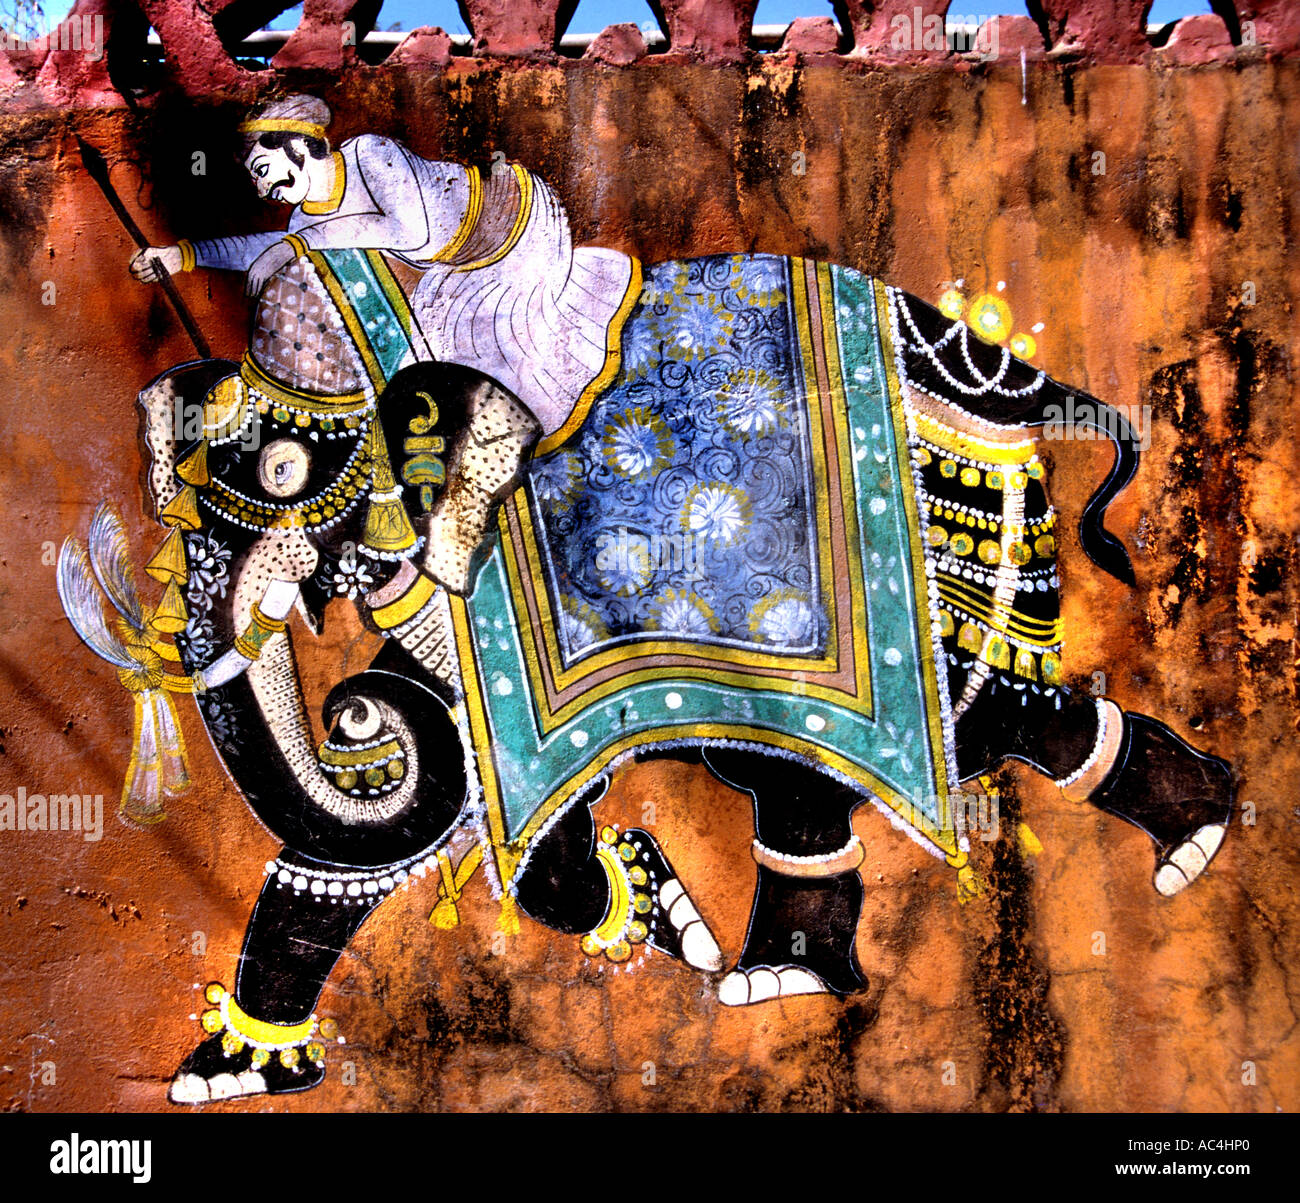 India Rajasthan painting, wall, painting, fresco, art, depiction, picture, portrayal - Stock Image